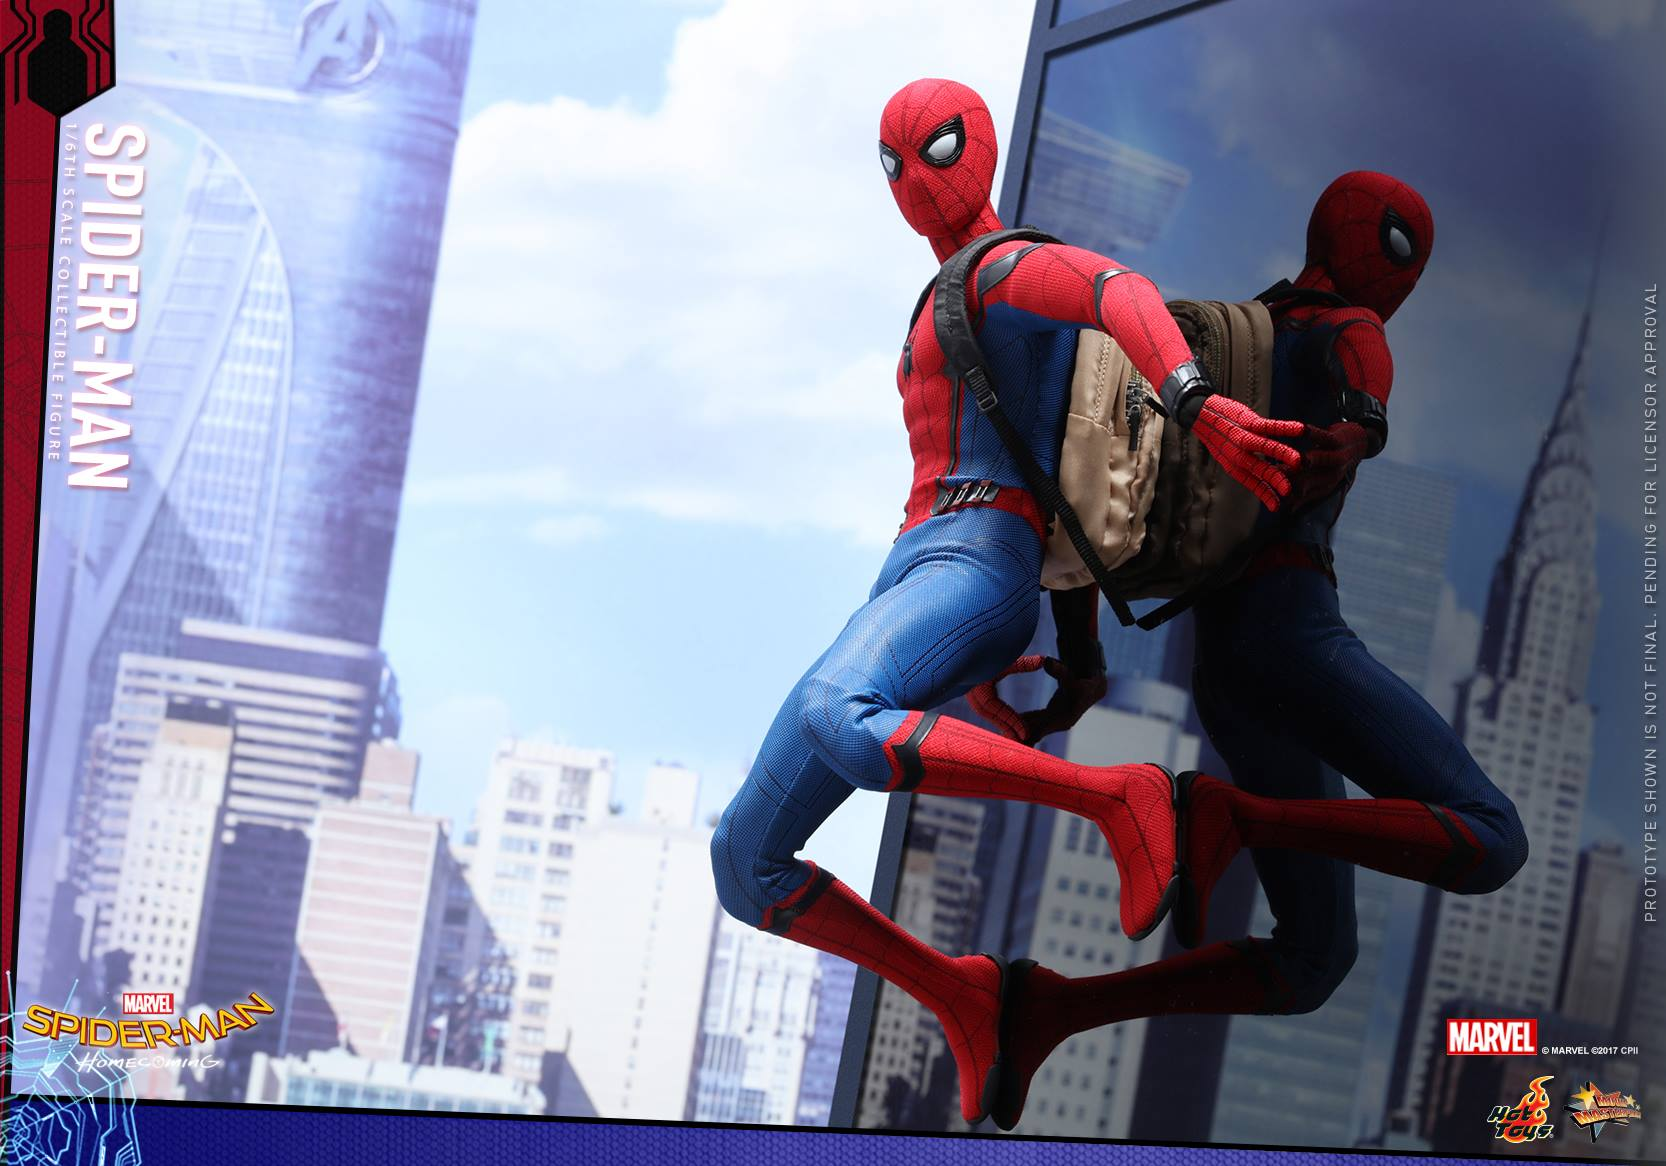 Hot Toys Reveals Spider-man Homecoming Spider-Man (Updated)